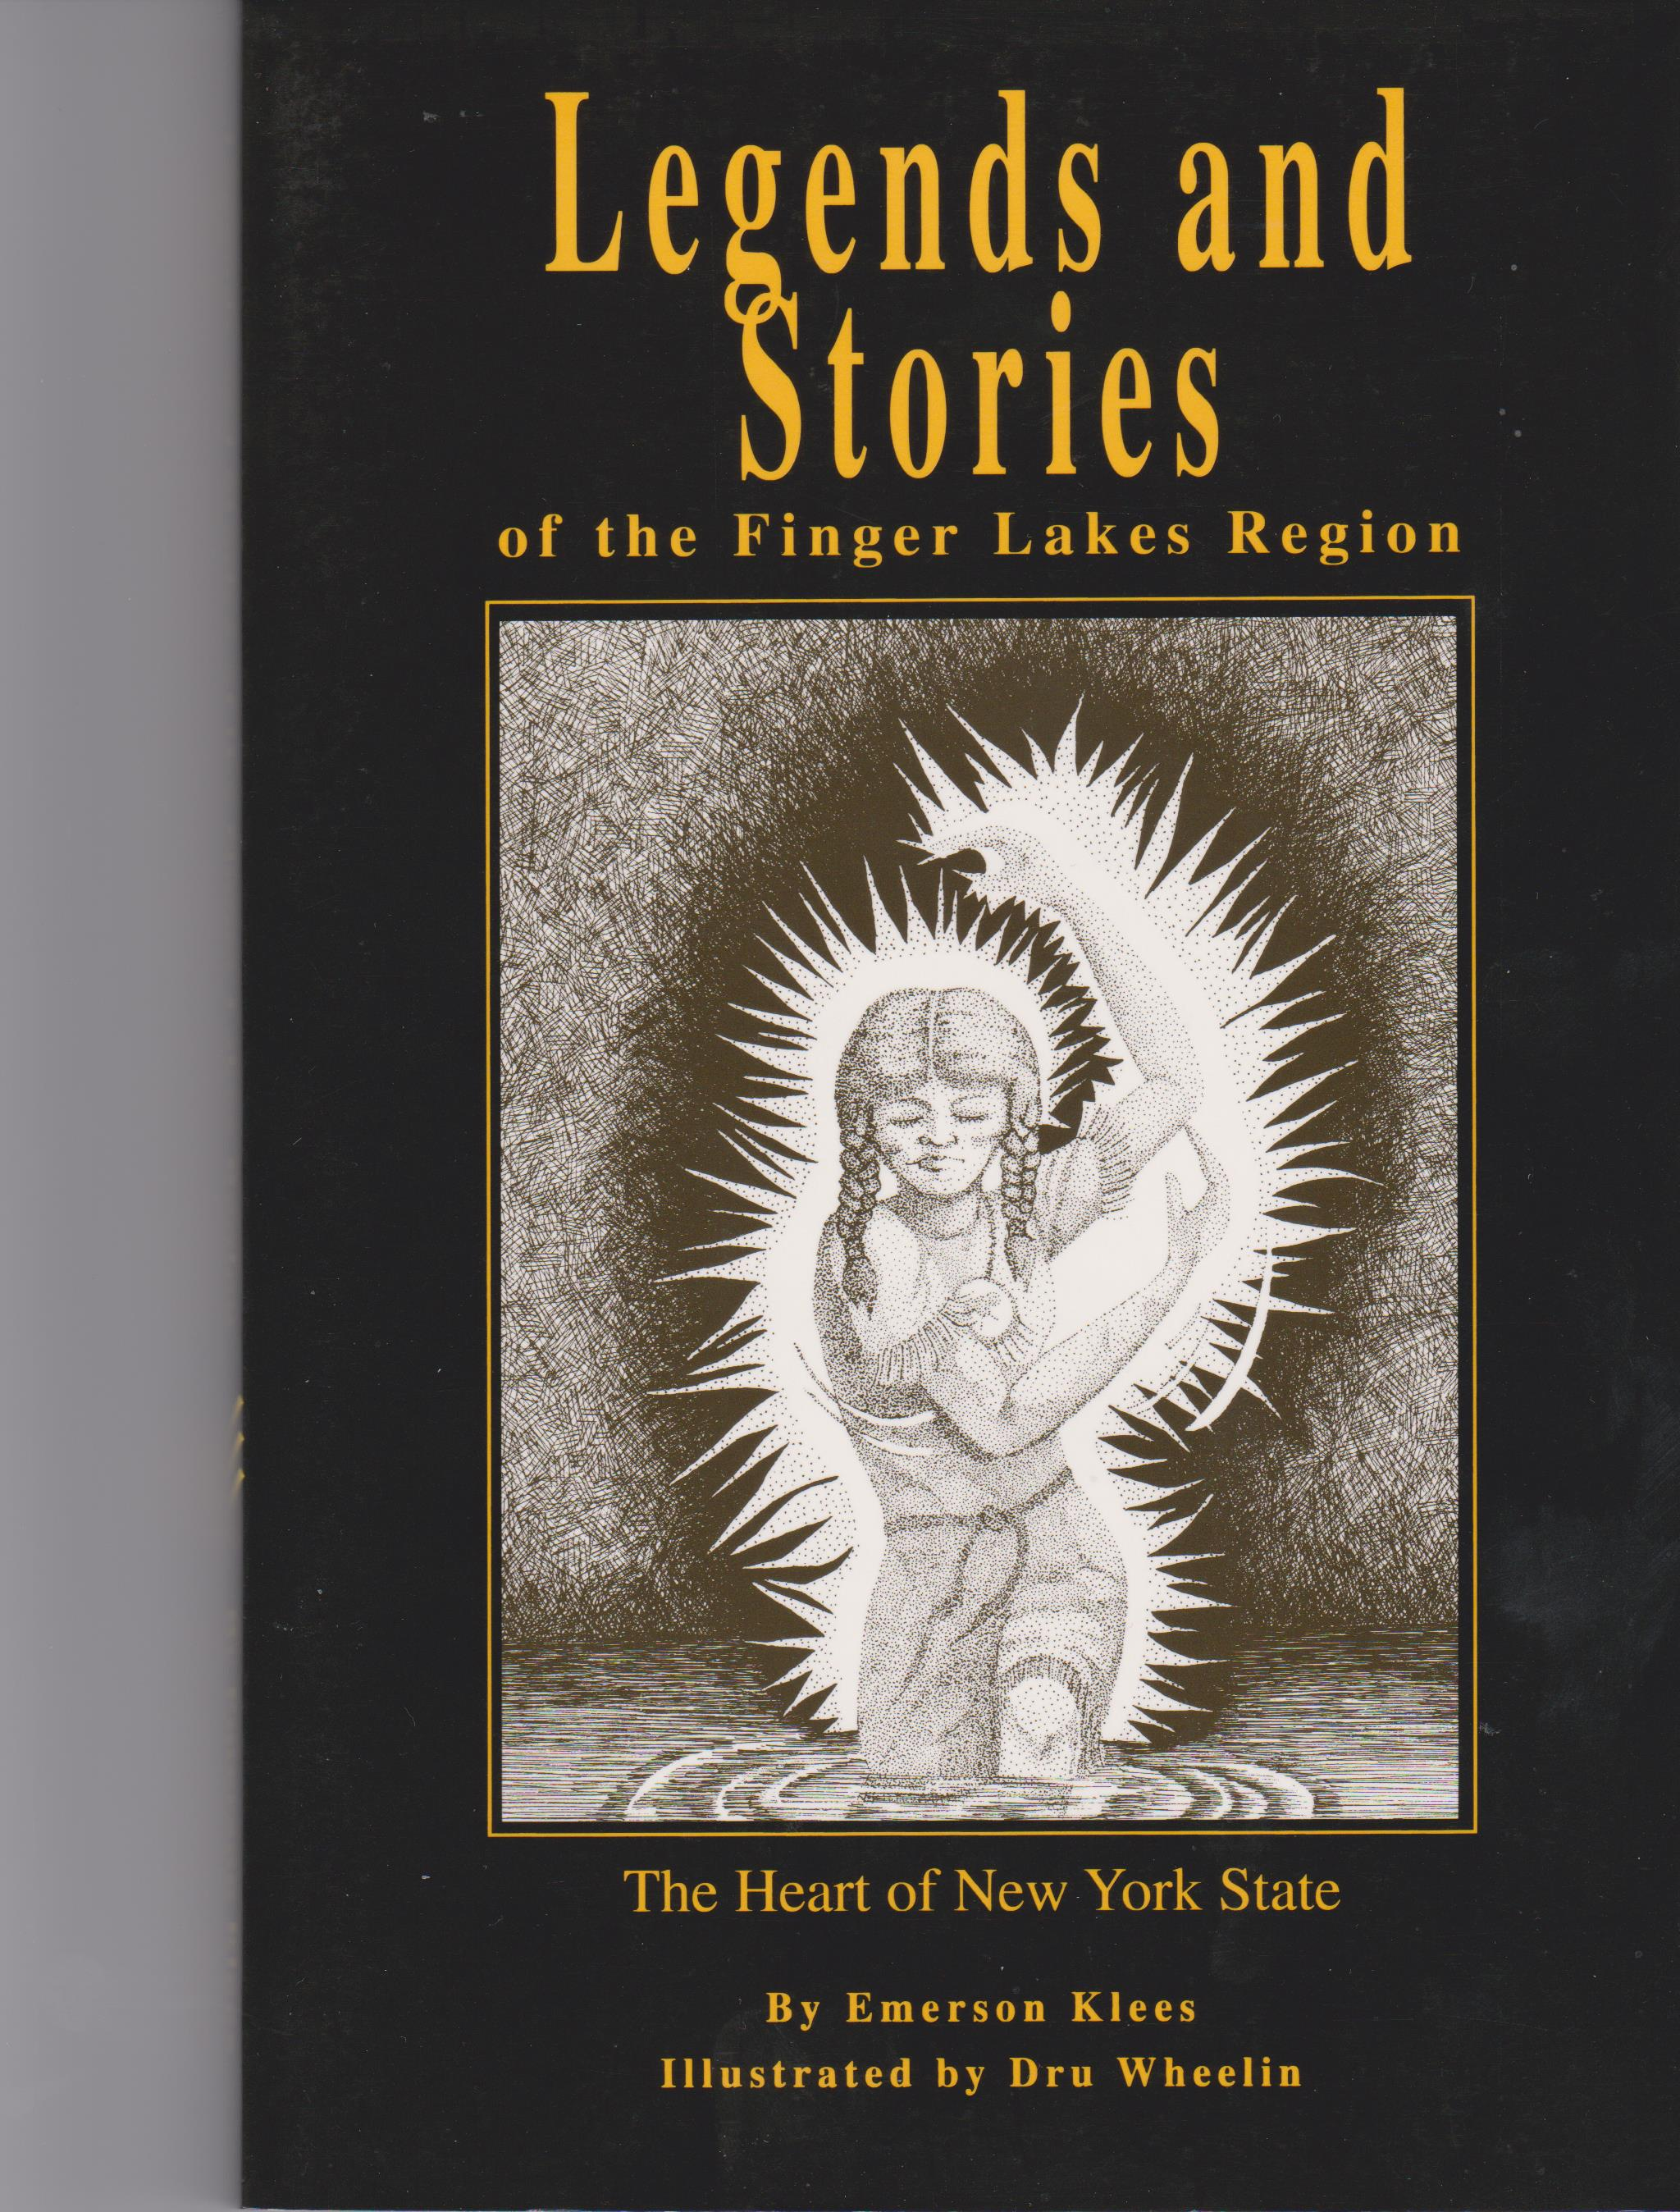 Legends and Stories of the Finger Lakes Region